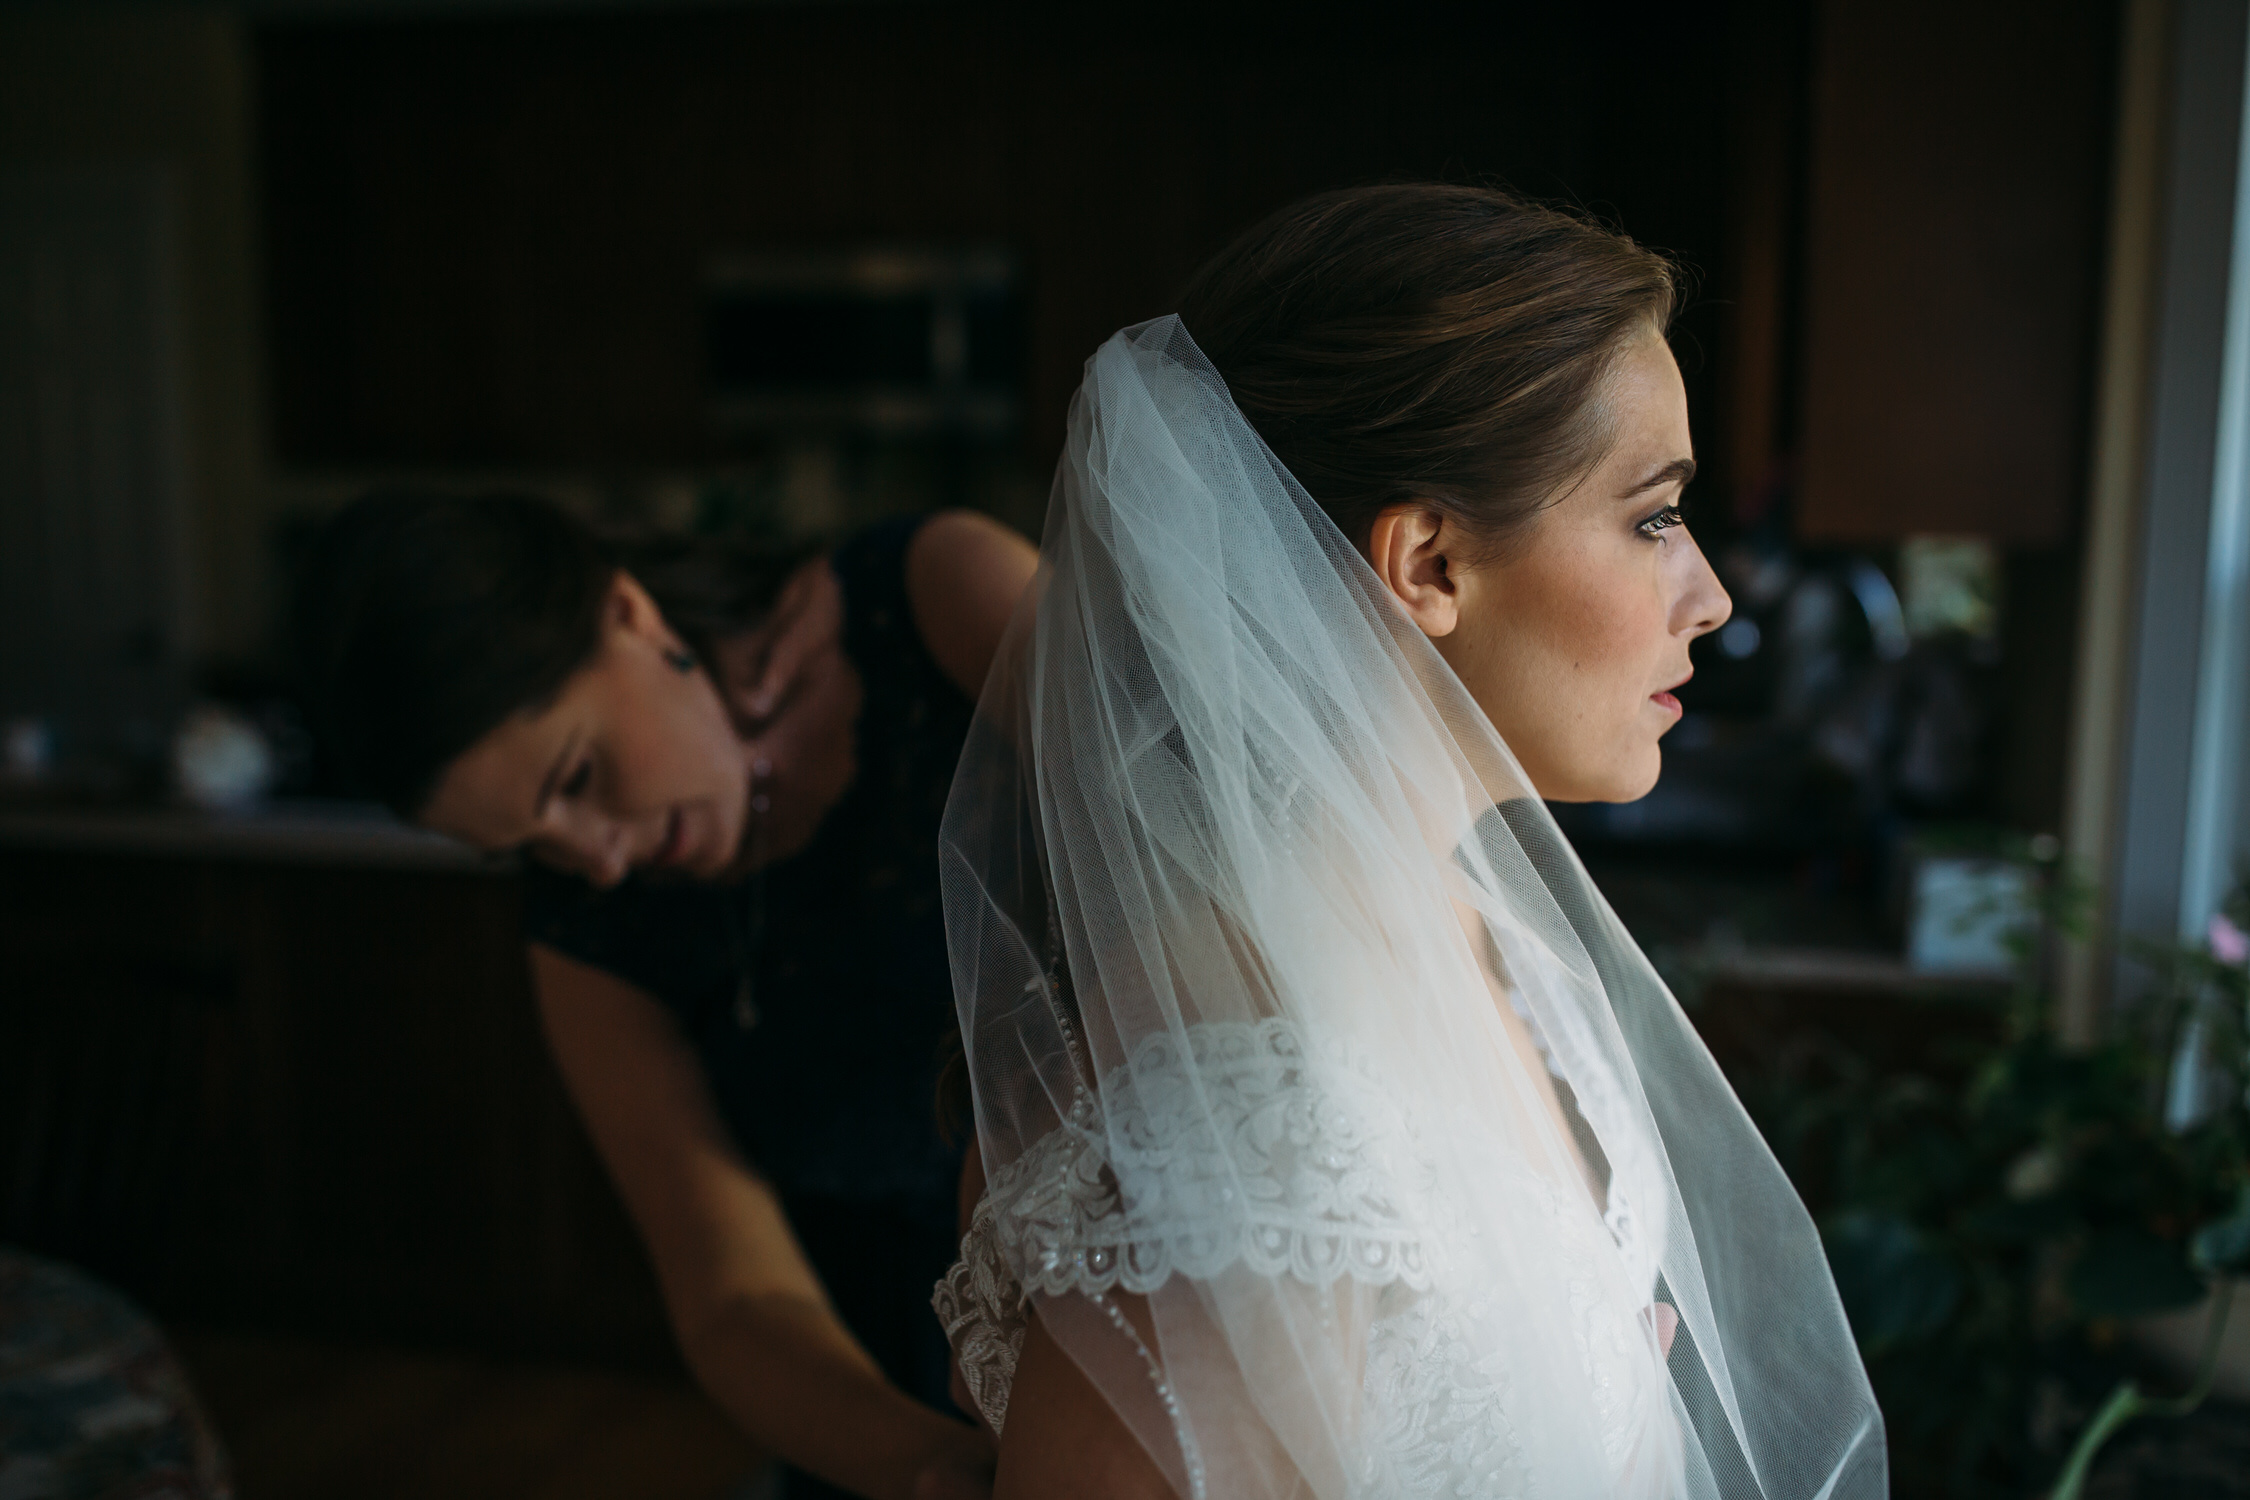 maid of honor duties, bride getting ready, st louis wedding photographer